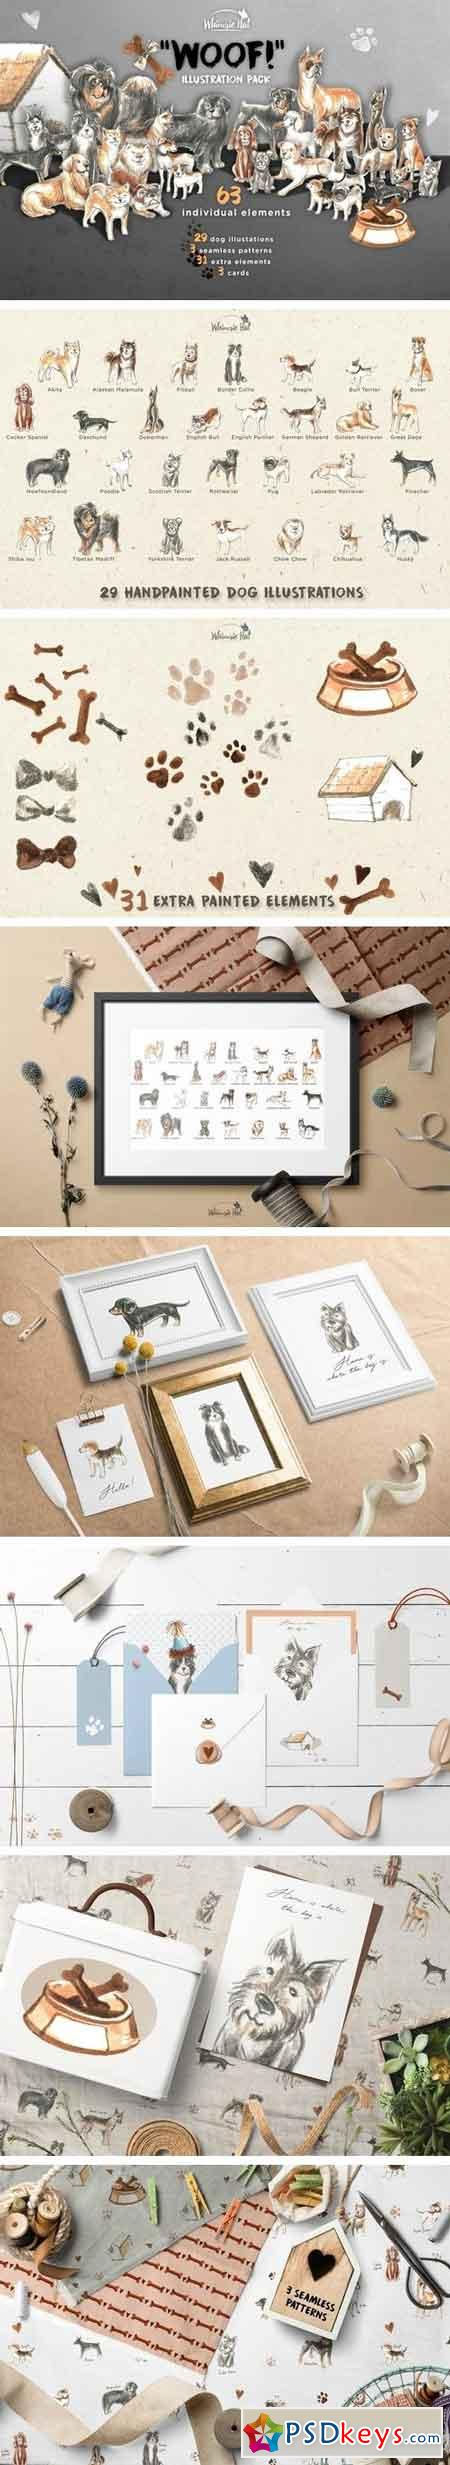 'Woof!' illustration pack 2108491